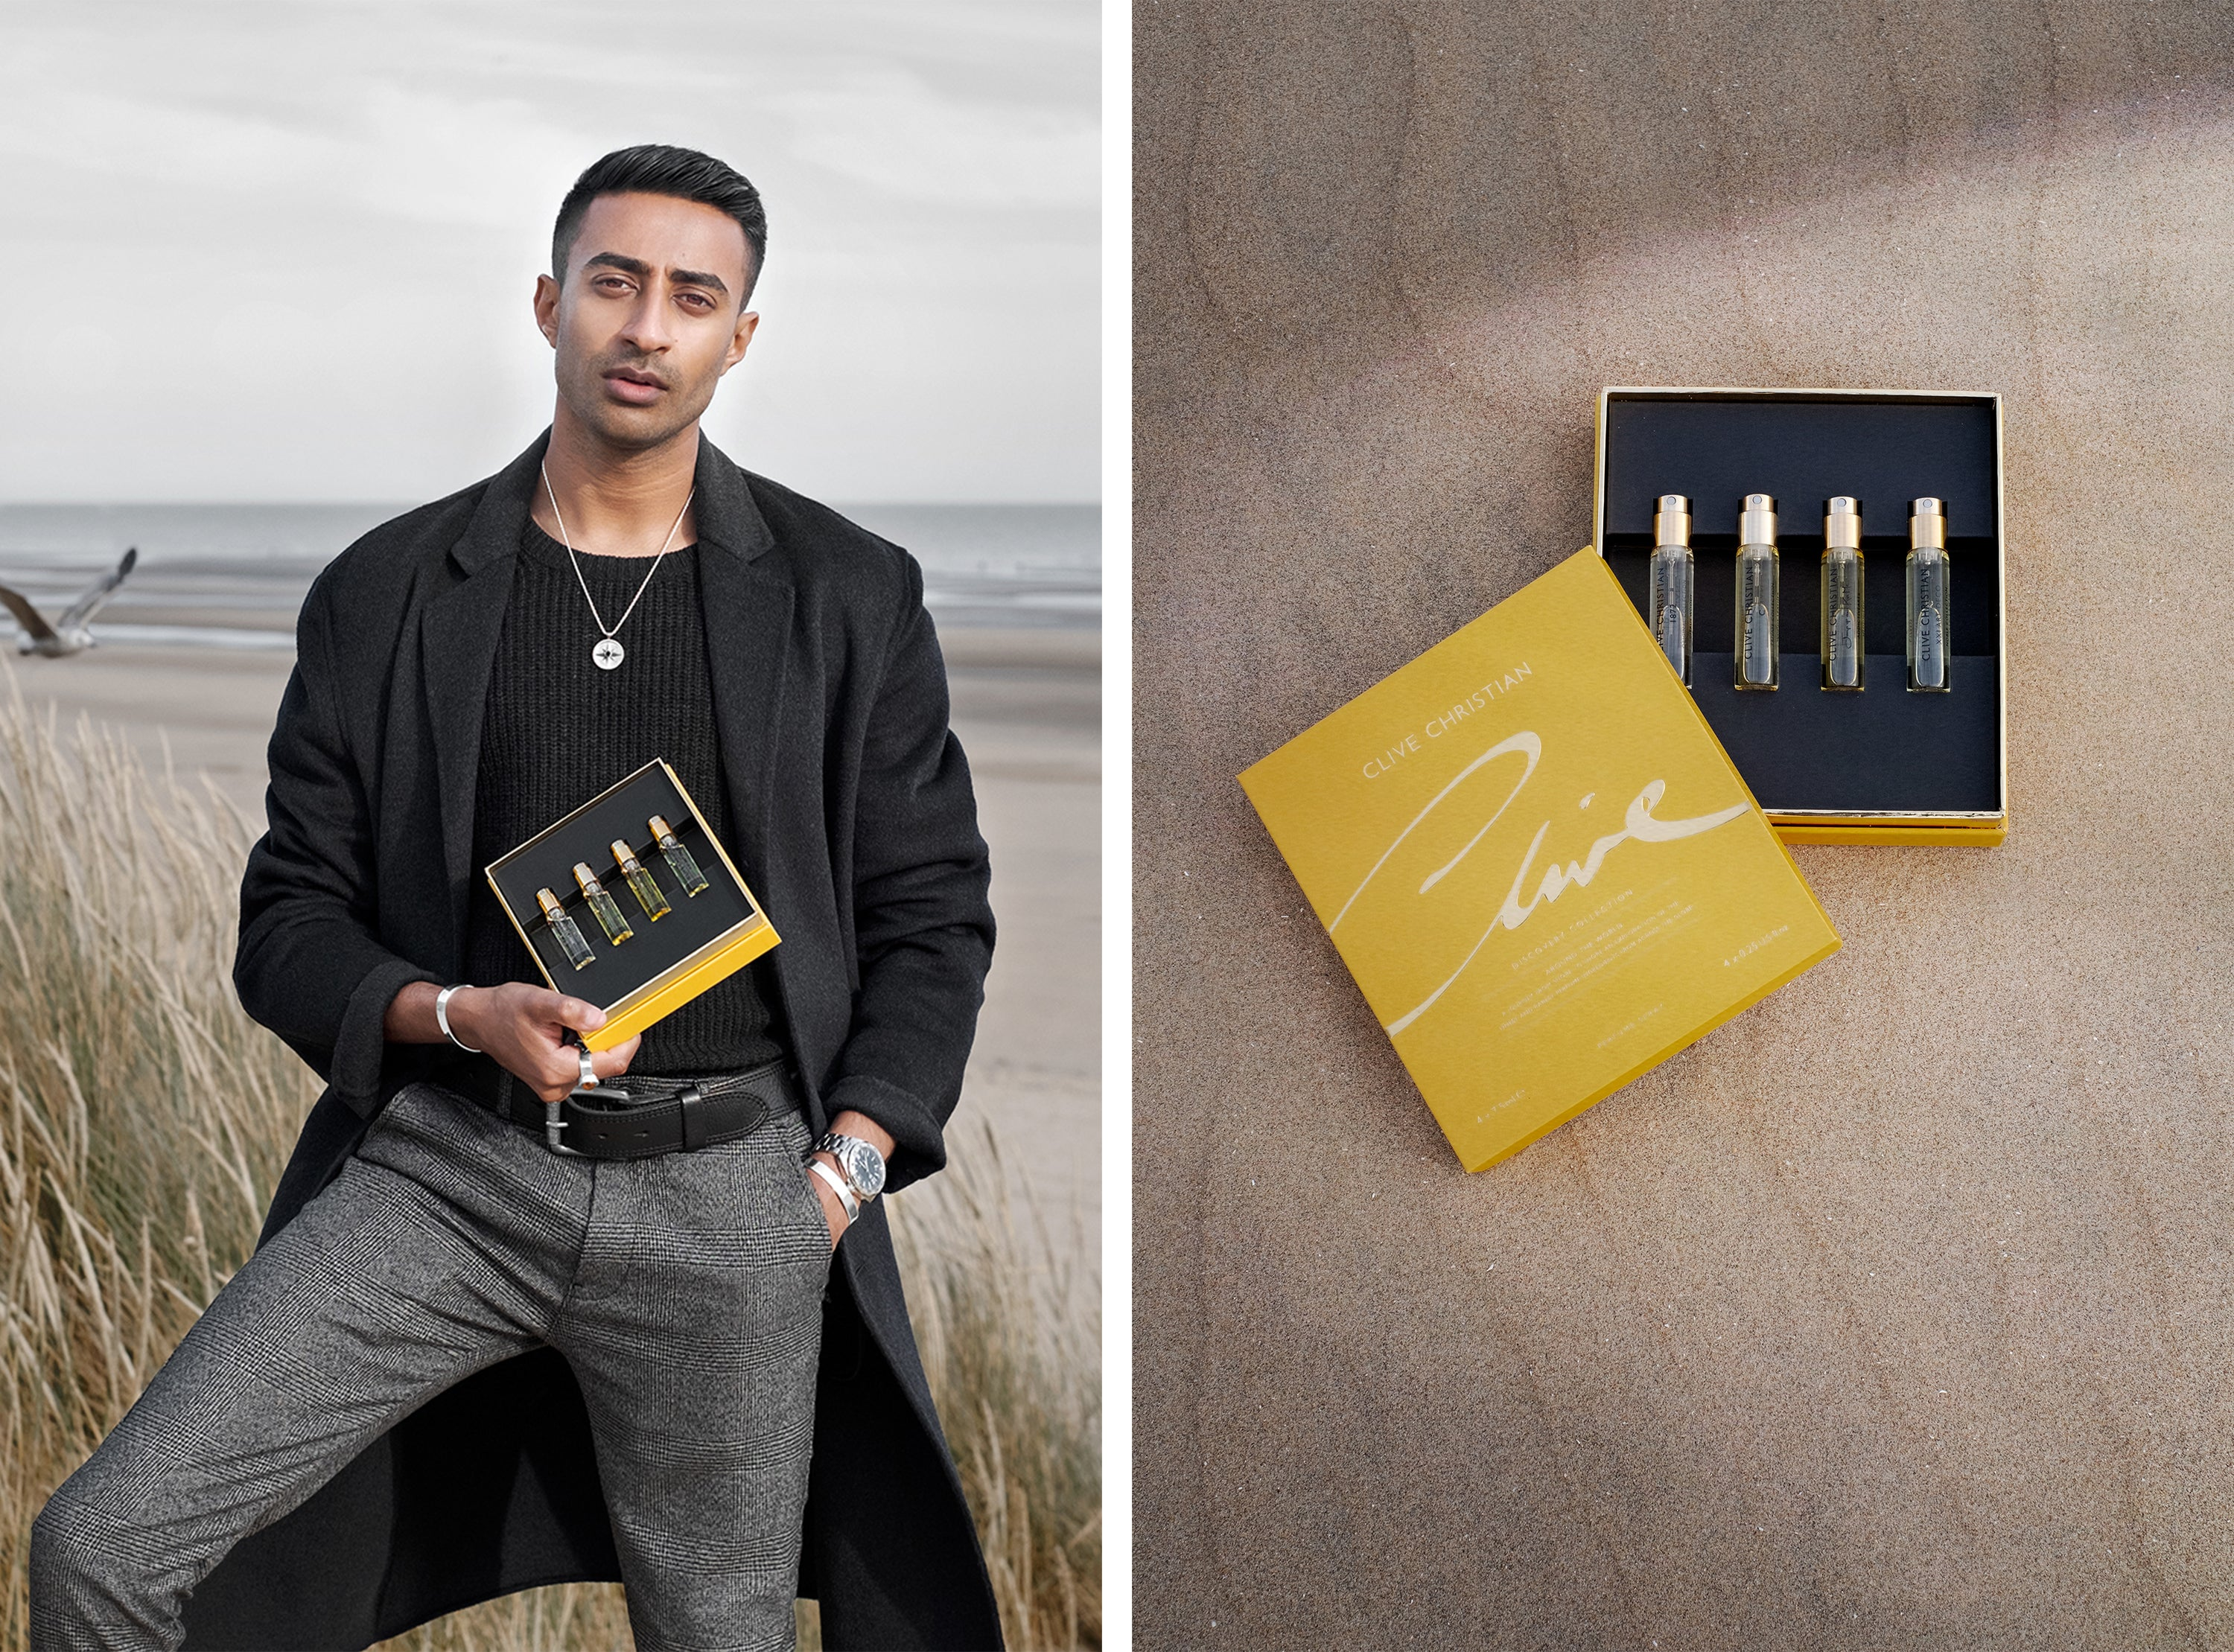 Rahul Patel Clive Chrisitan Worlds Most Expensive Perfume Brand British Luxury House Around The World Discover Set Masculine